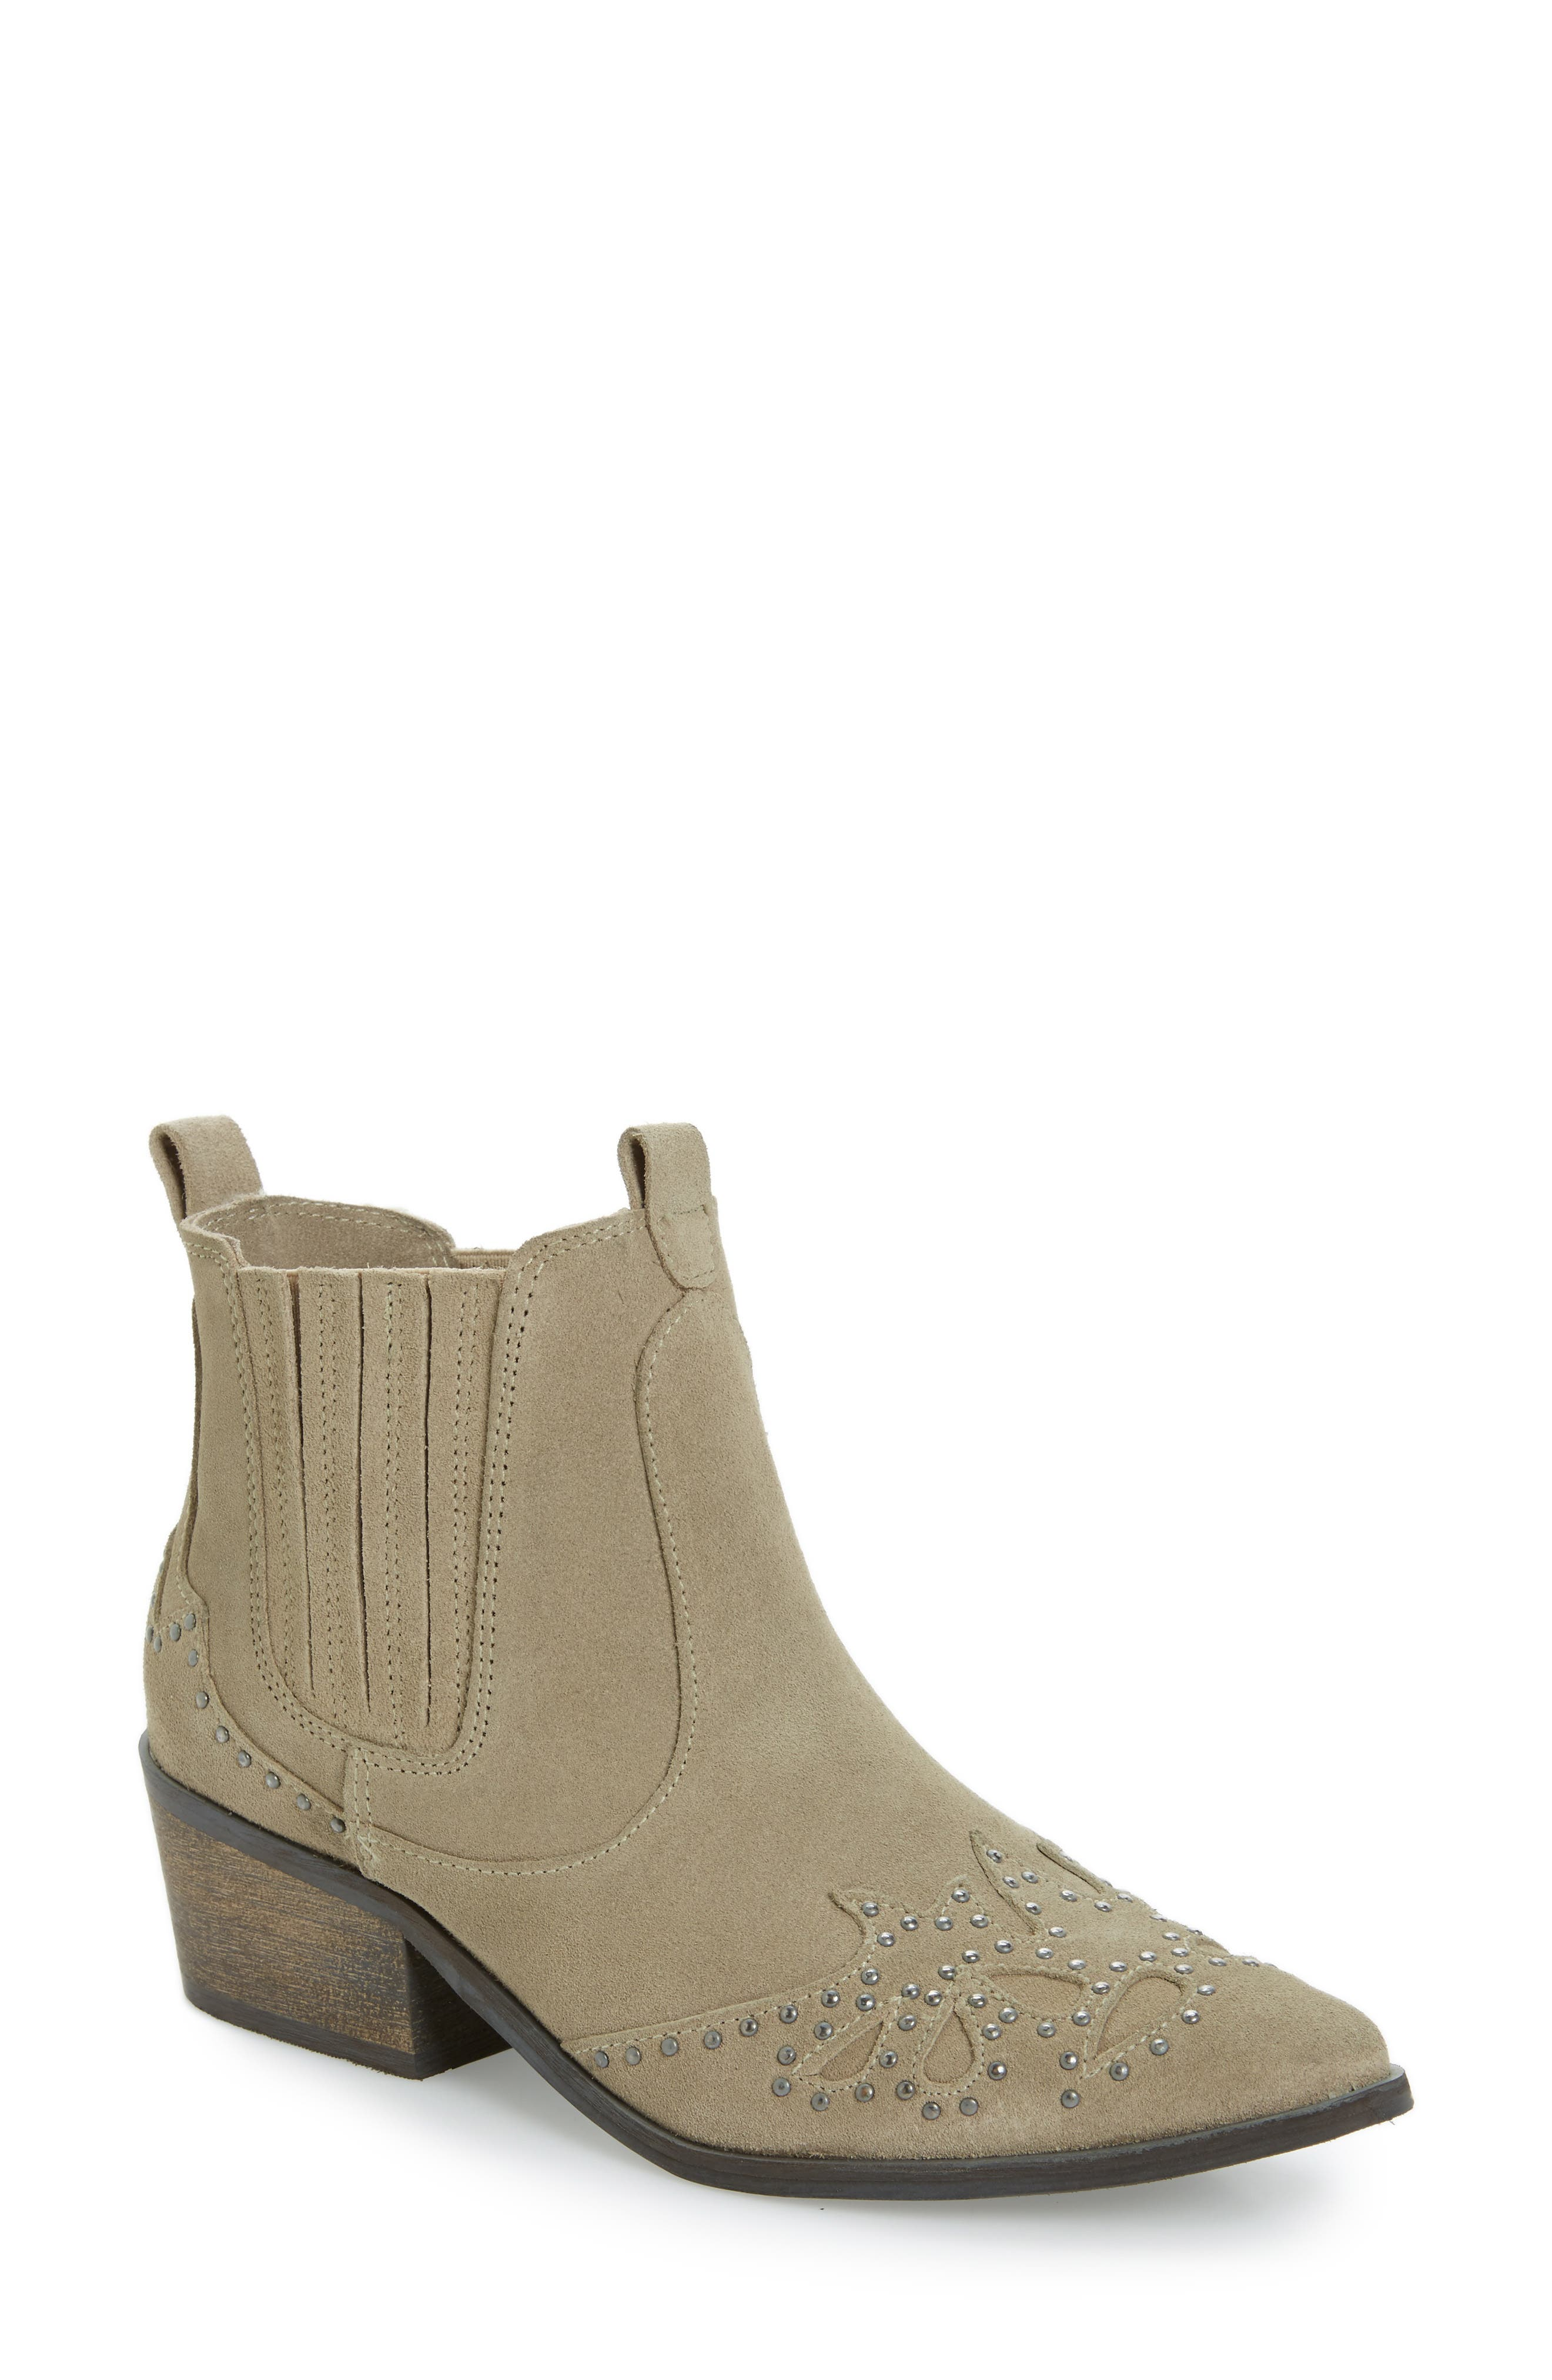 Backstage Bootie,                             Main thumbnail 1, color,                             Taupe Leather